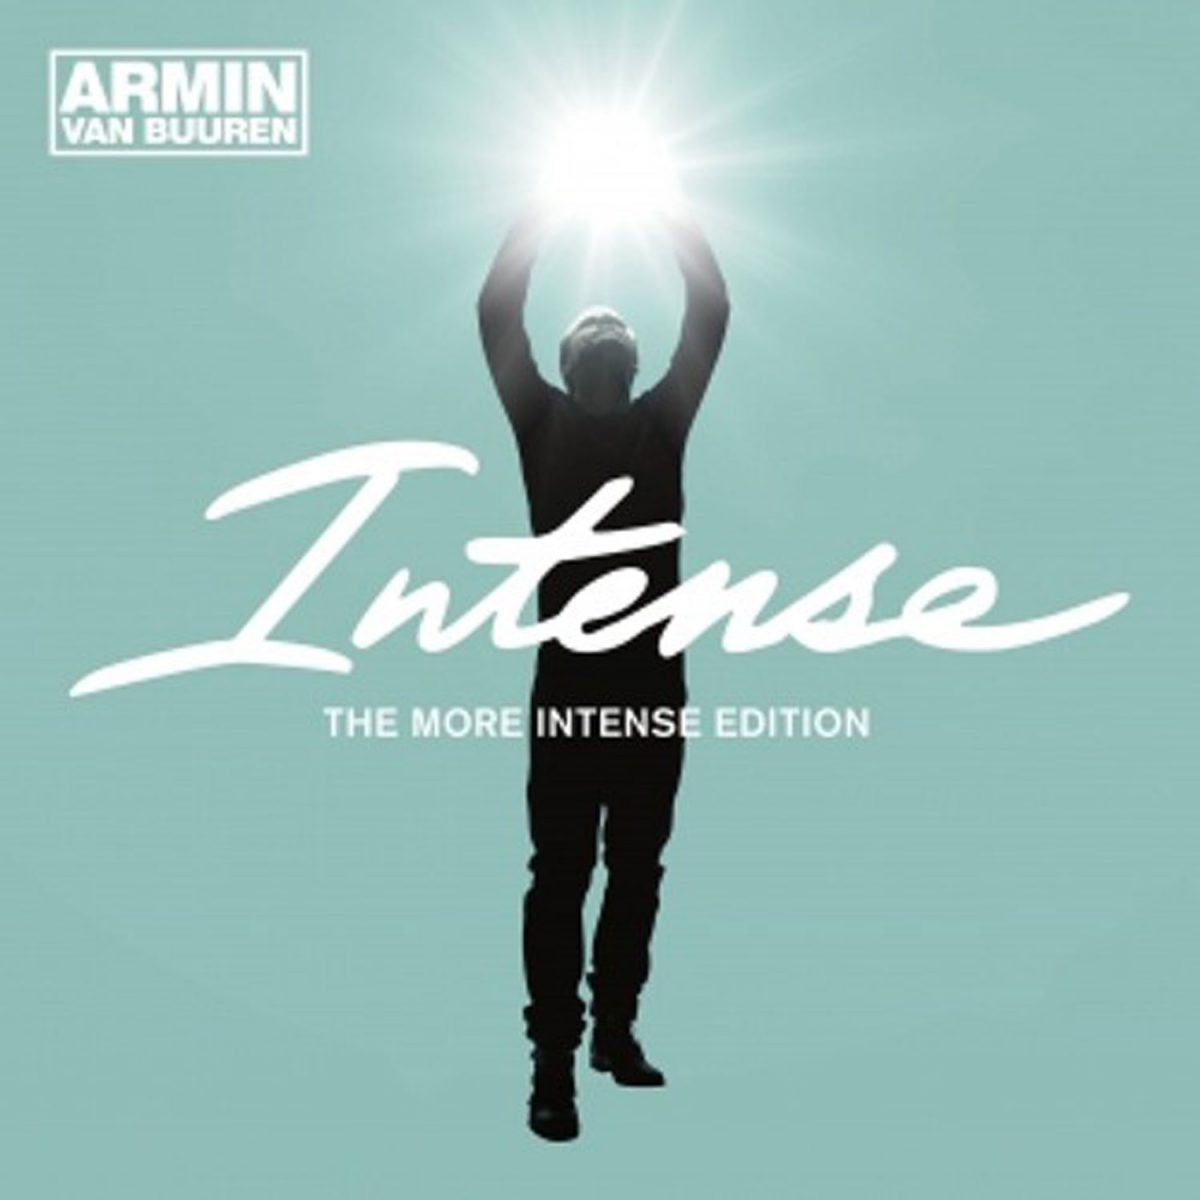 Armin van Buuren feat. Richard Bedford - Love Never Came (The Blizzard Remix) on Armada Music